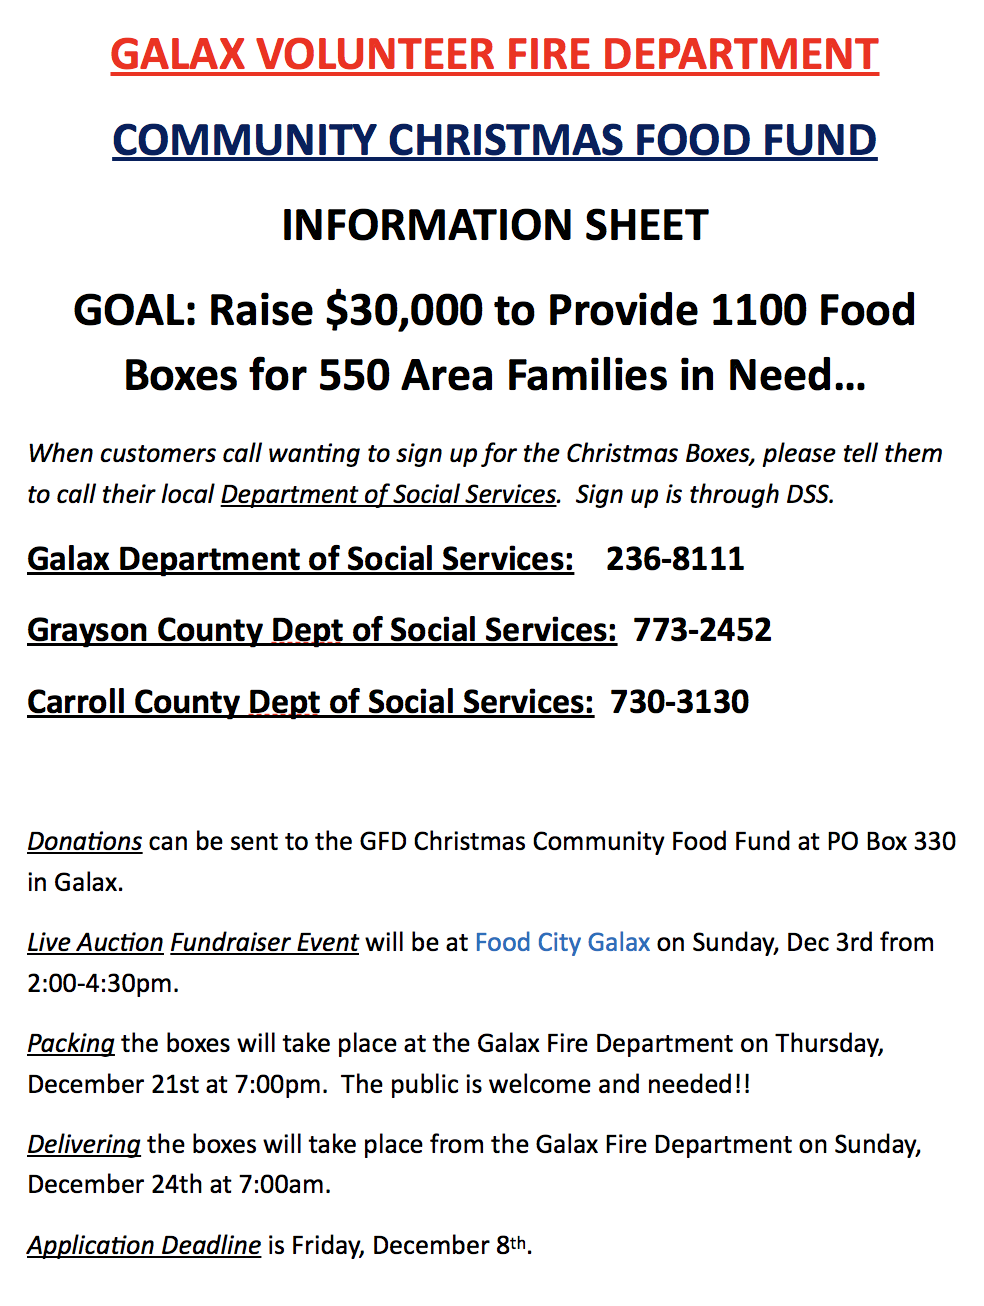 Community Christmas Food Fund - 2017 - Galax Fire Department